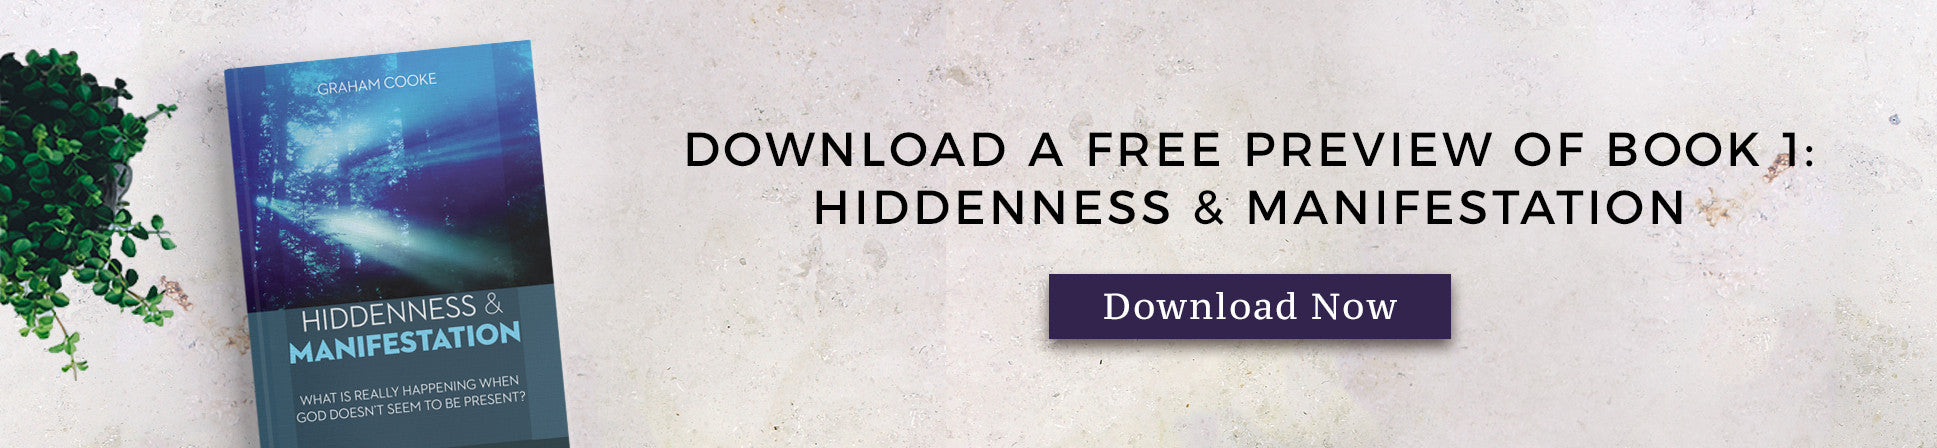 Hiddenness & Manifestation Sample